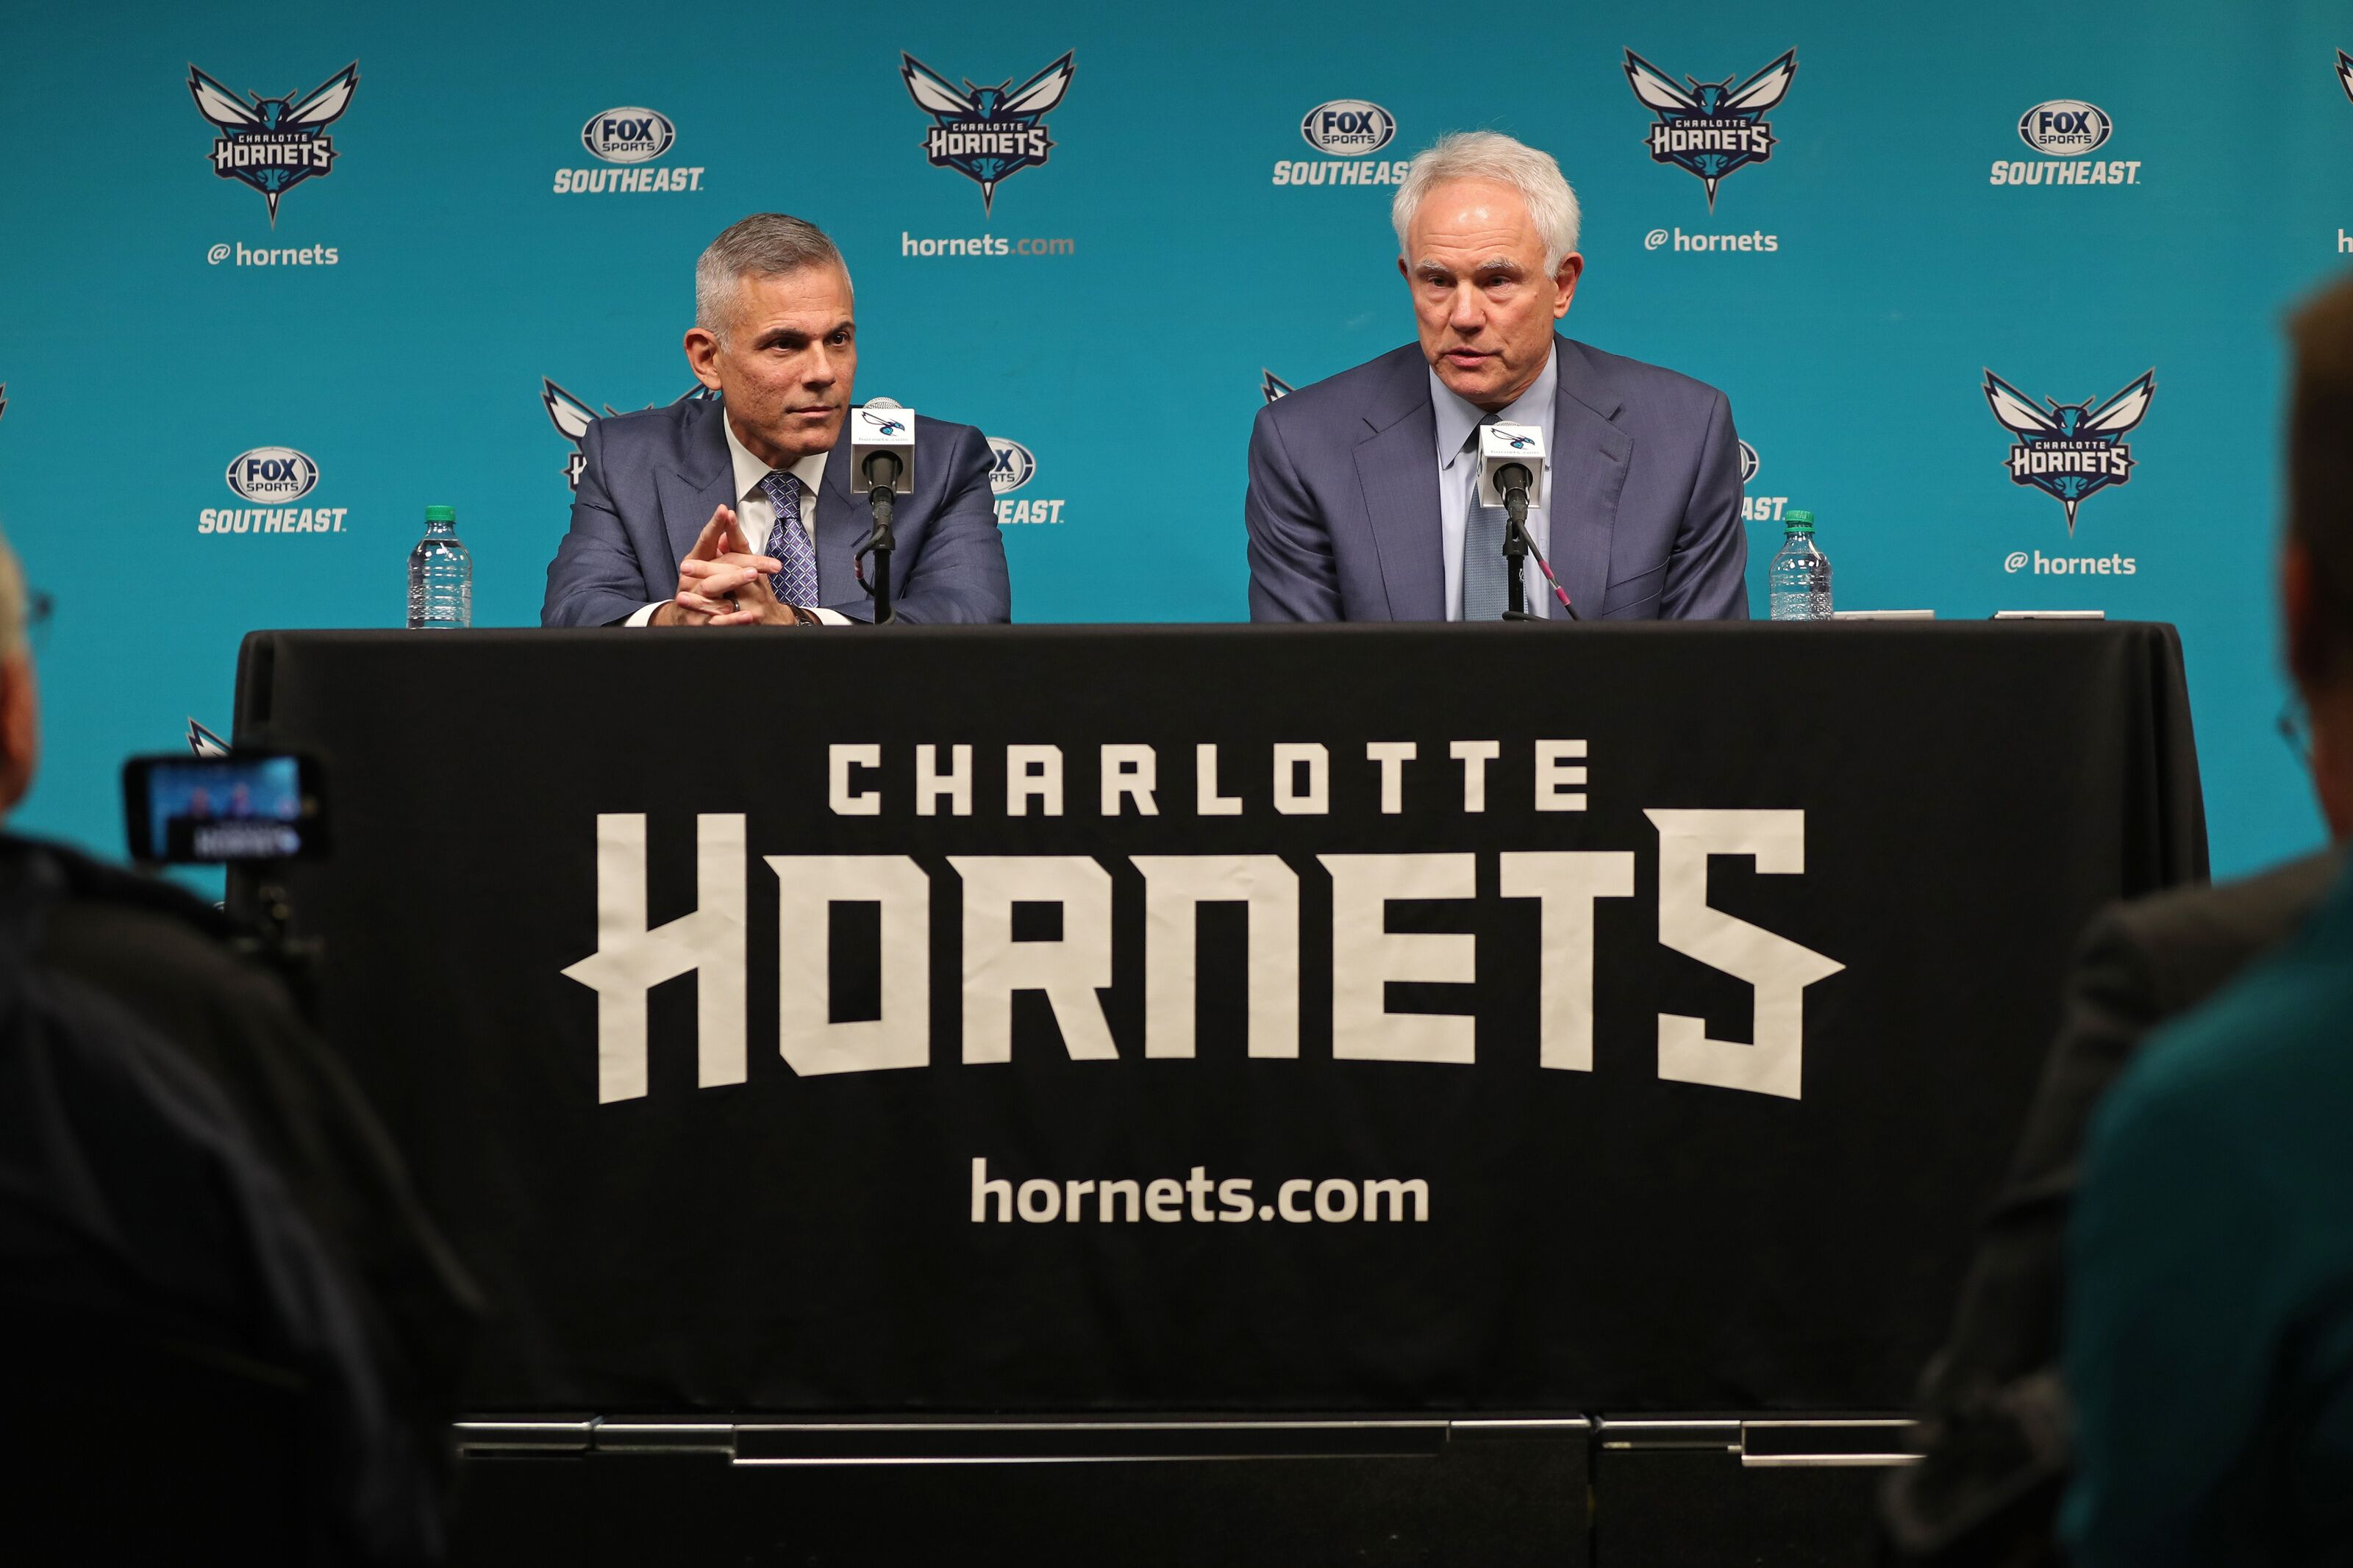 944696806-charlotte-hornets-introduce-mitch-kupchak-as-president-of-basketball-operations.jpg